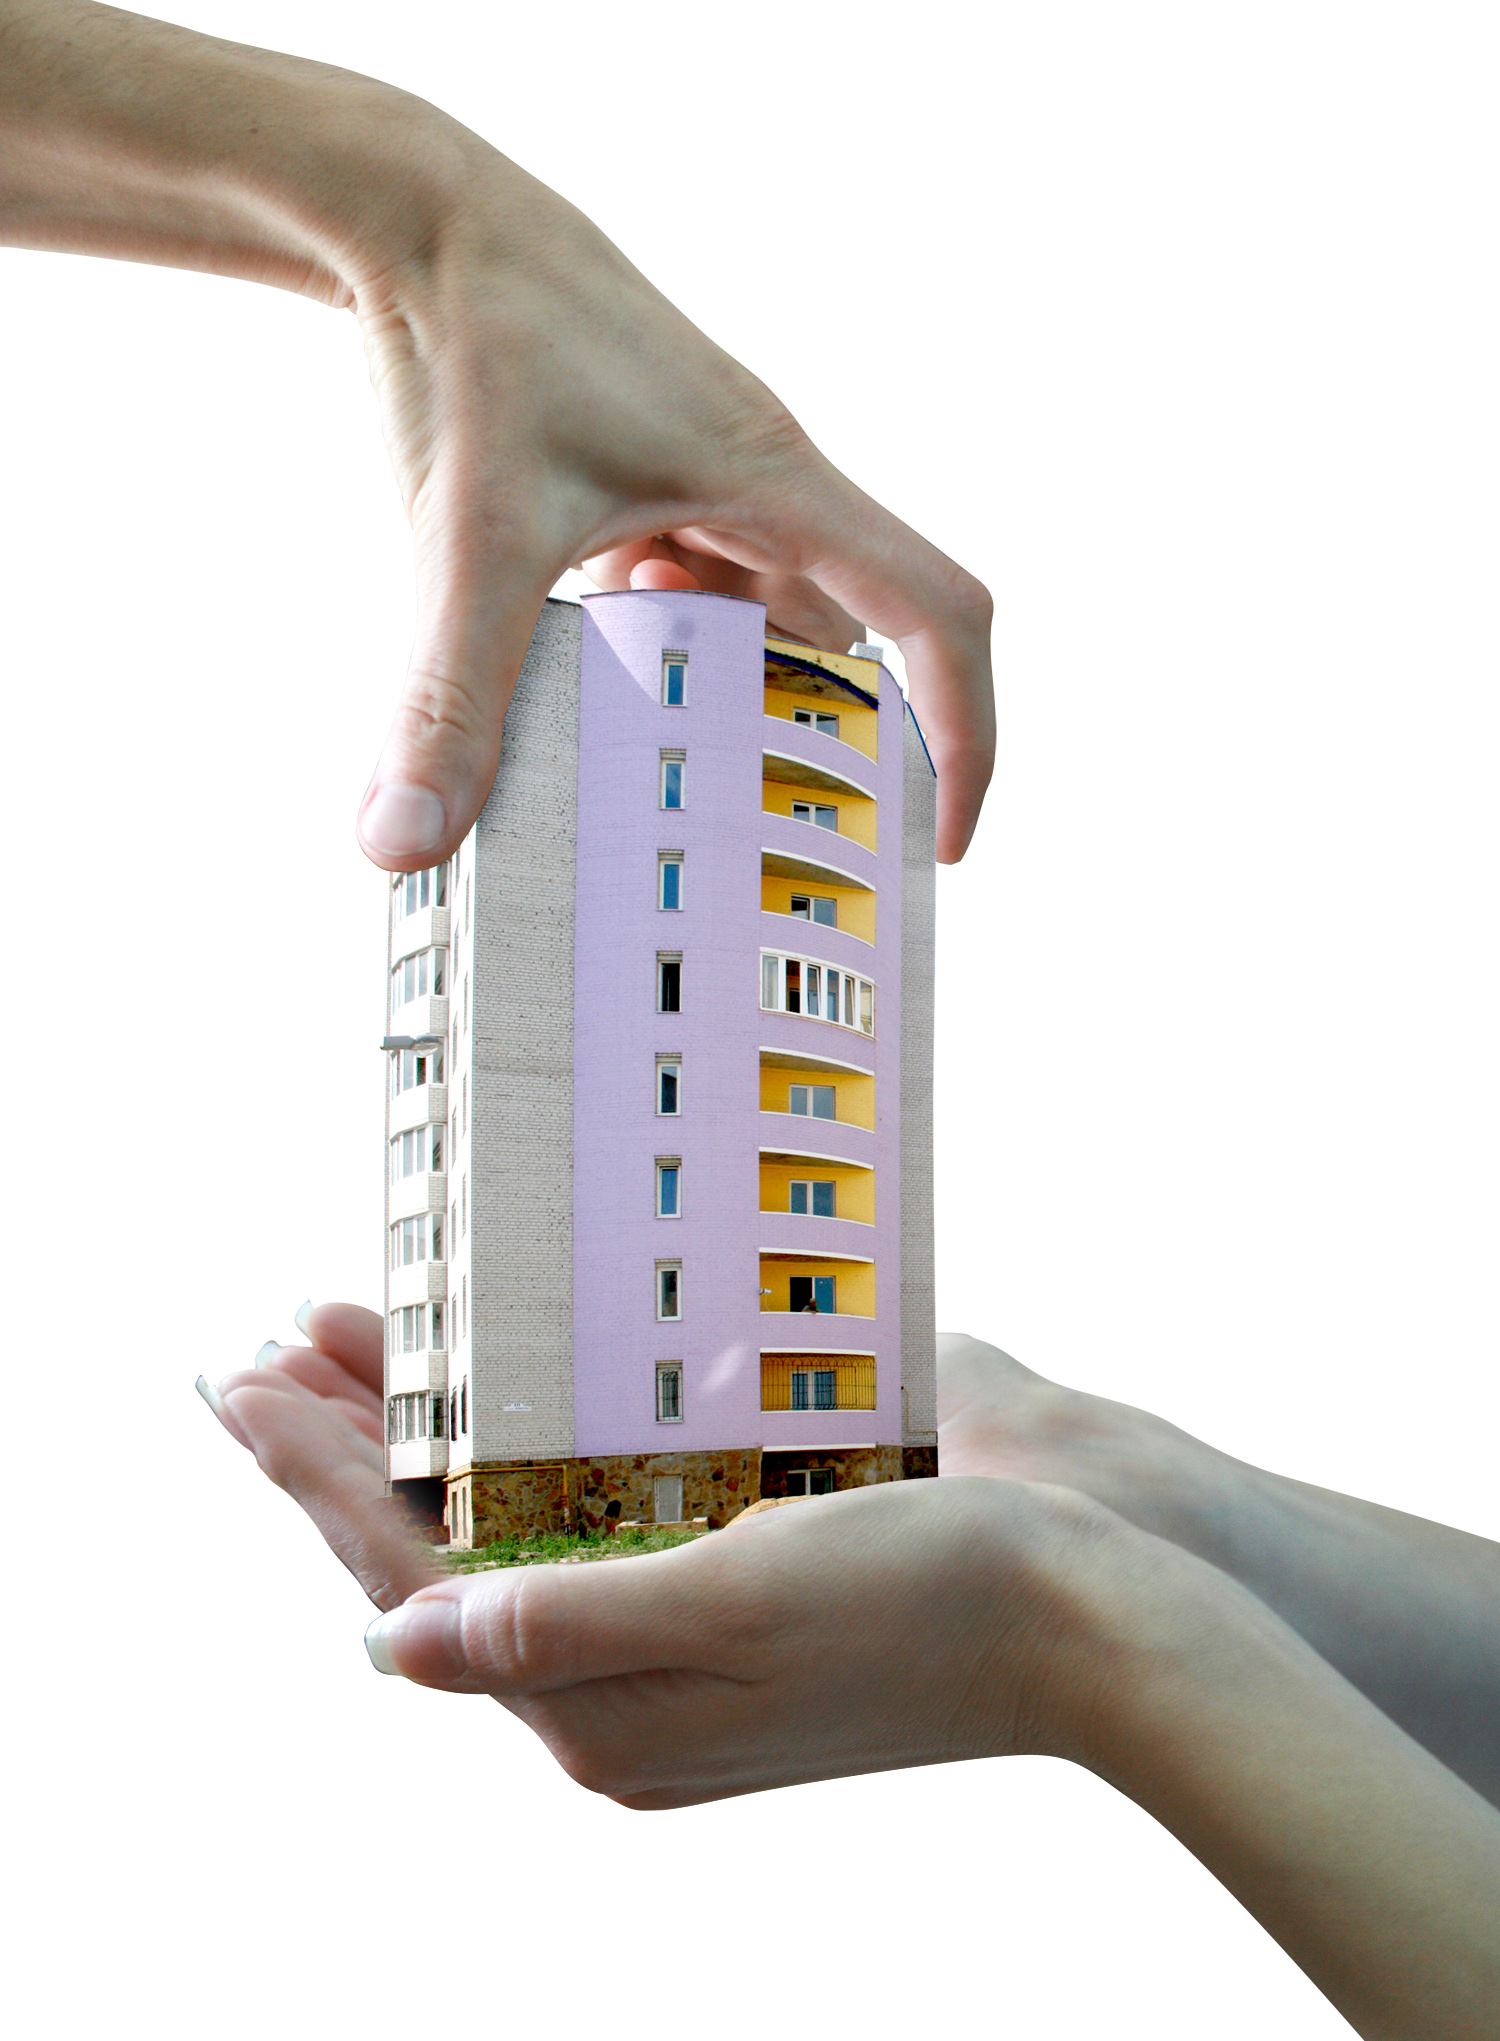 apartments up for grab image